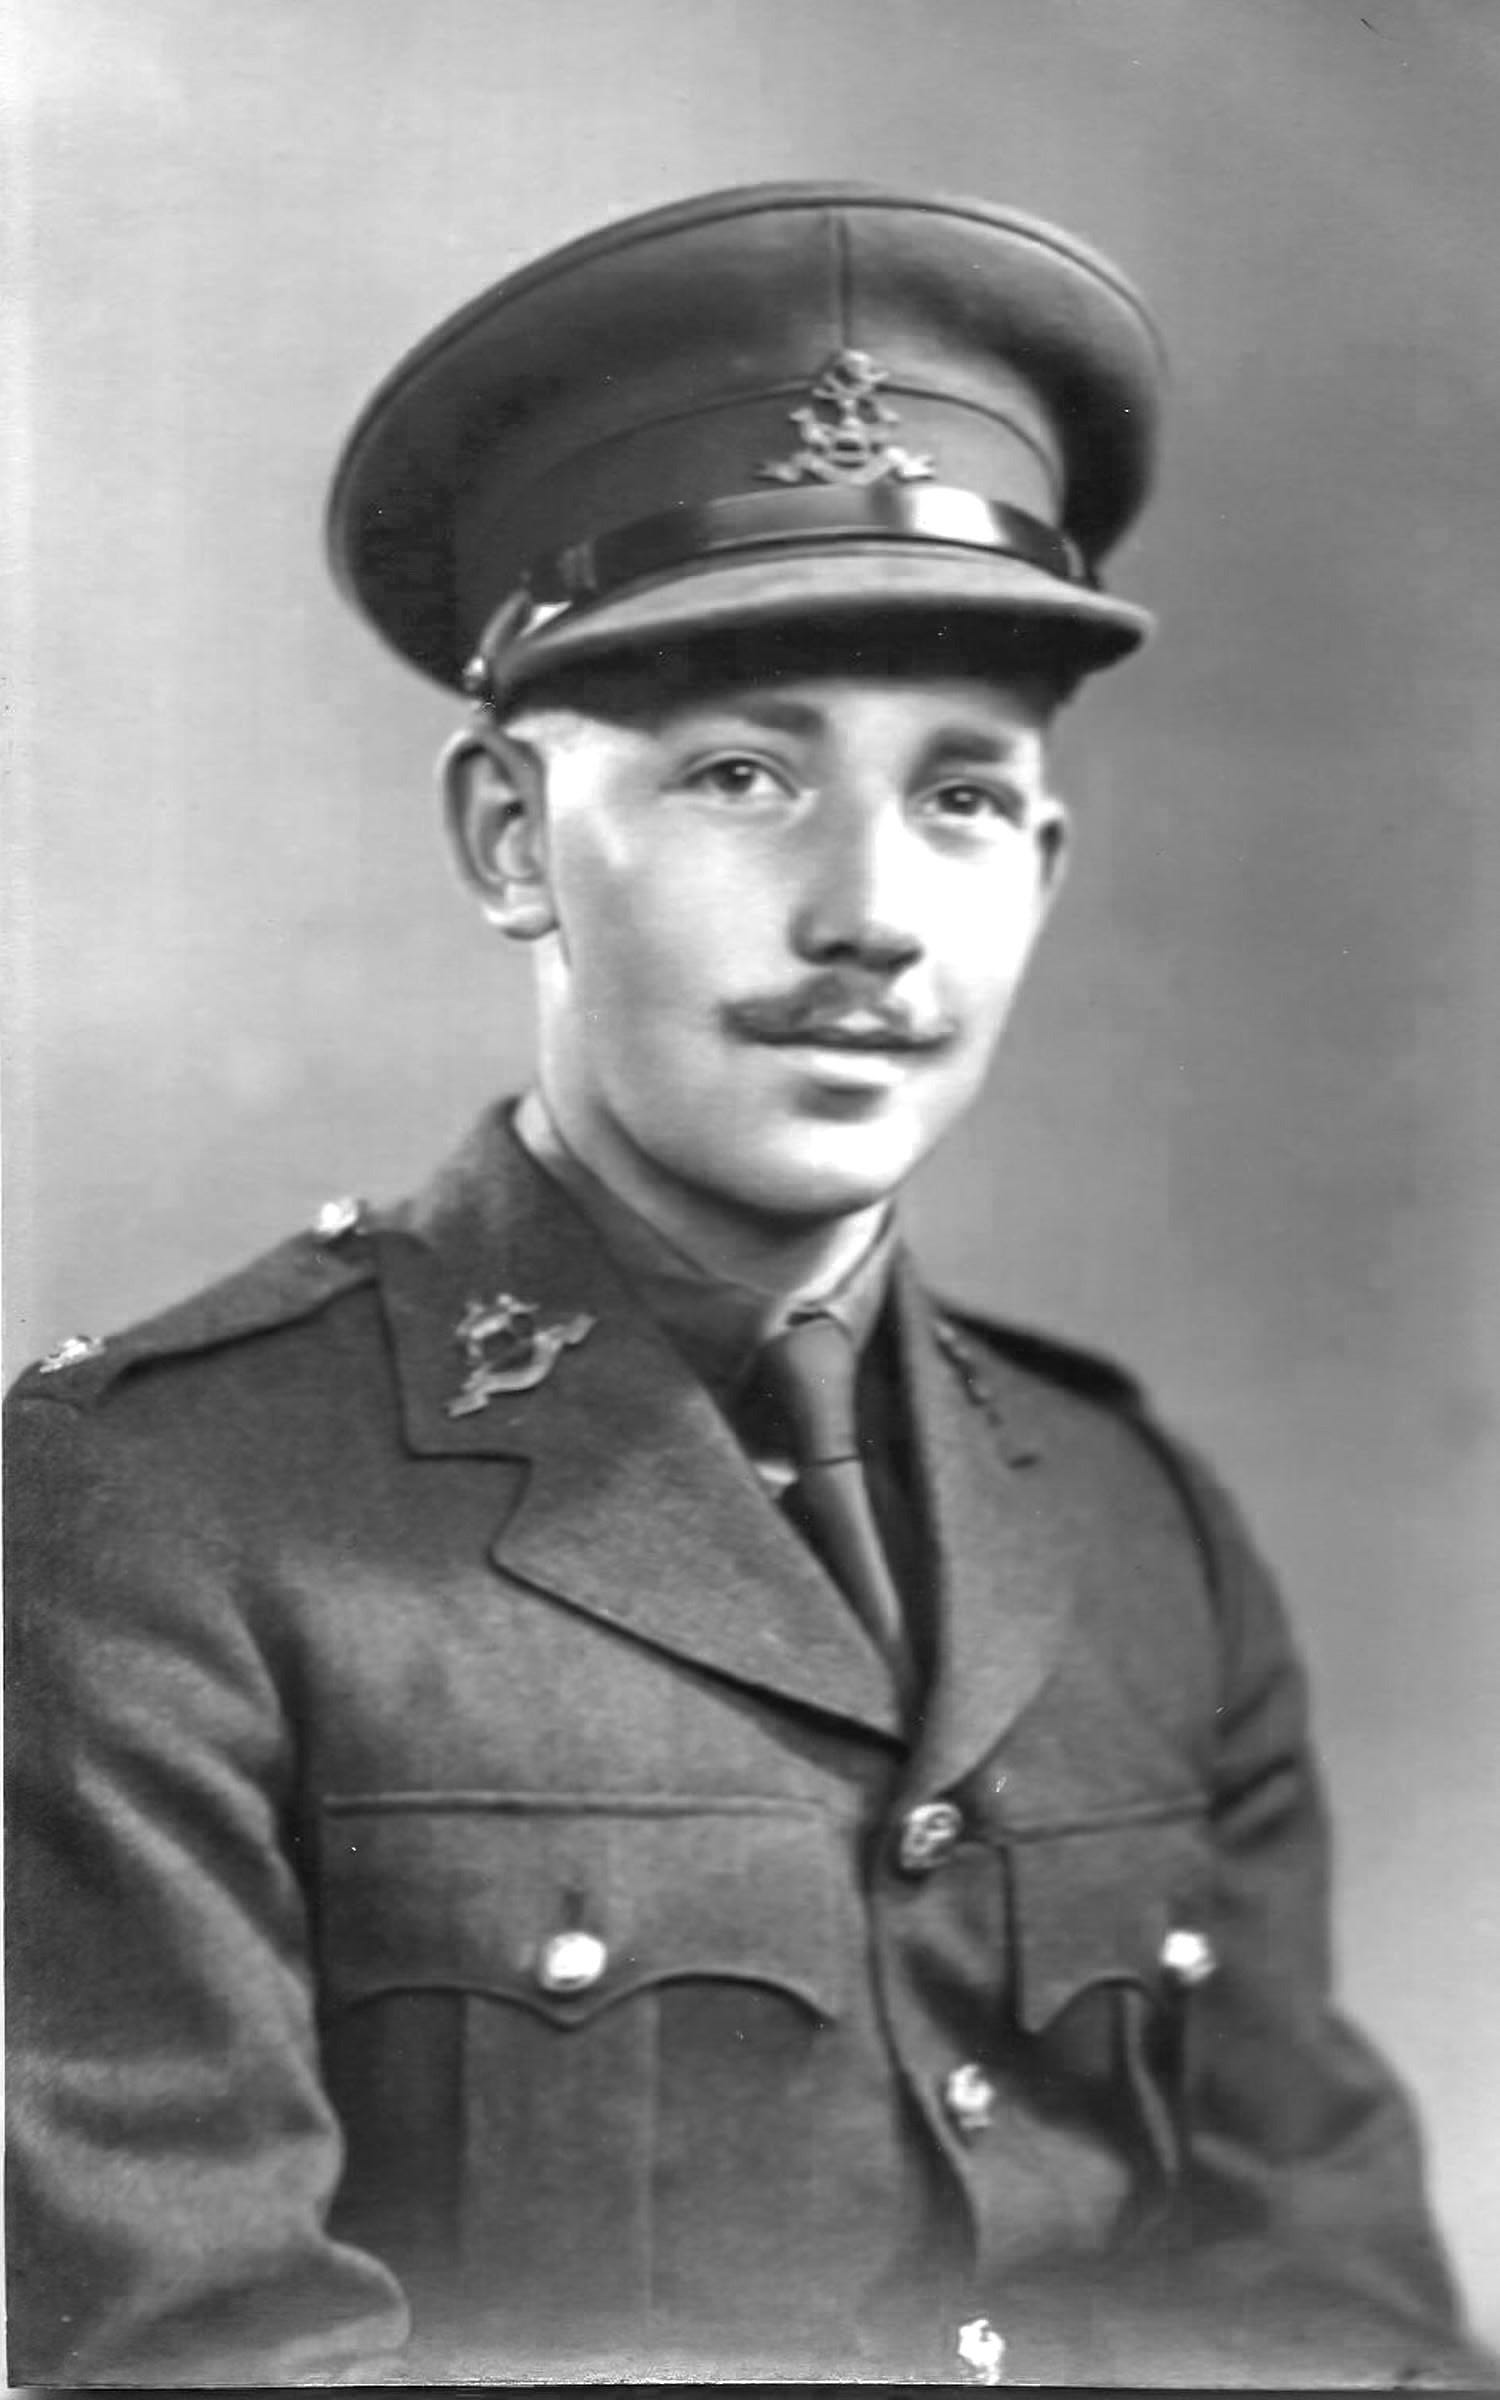 Tom Moore, 99, served in India and Indonesia during World War II